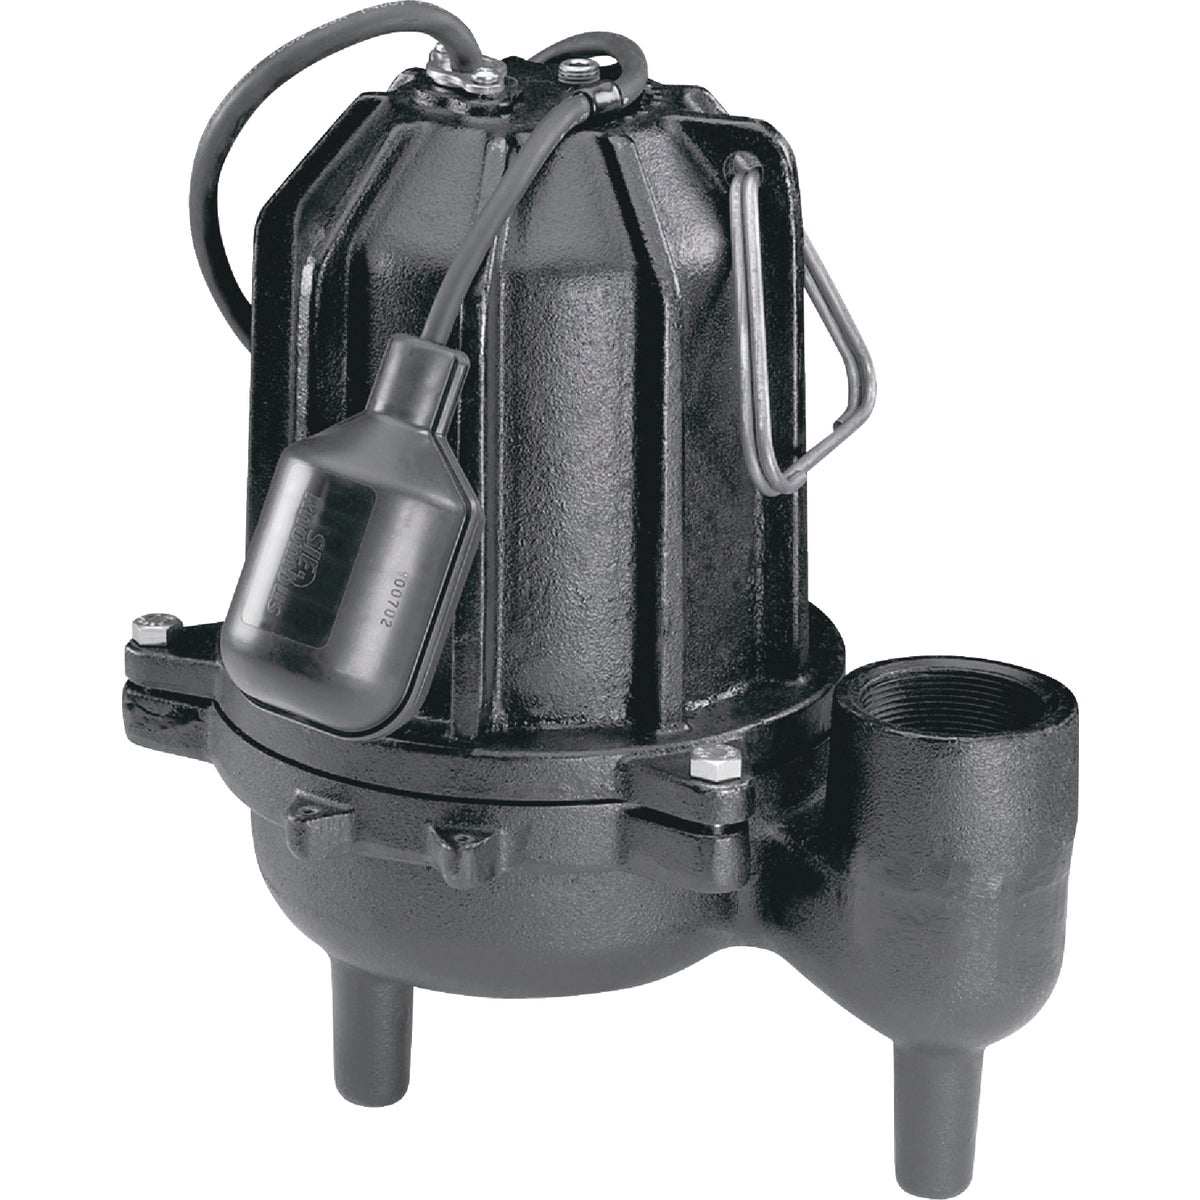 1/2HP CAST SEWAGE PUMP - CSE50TE by Wayne Water Systems